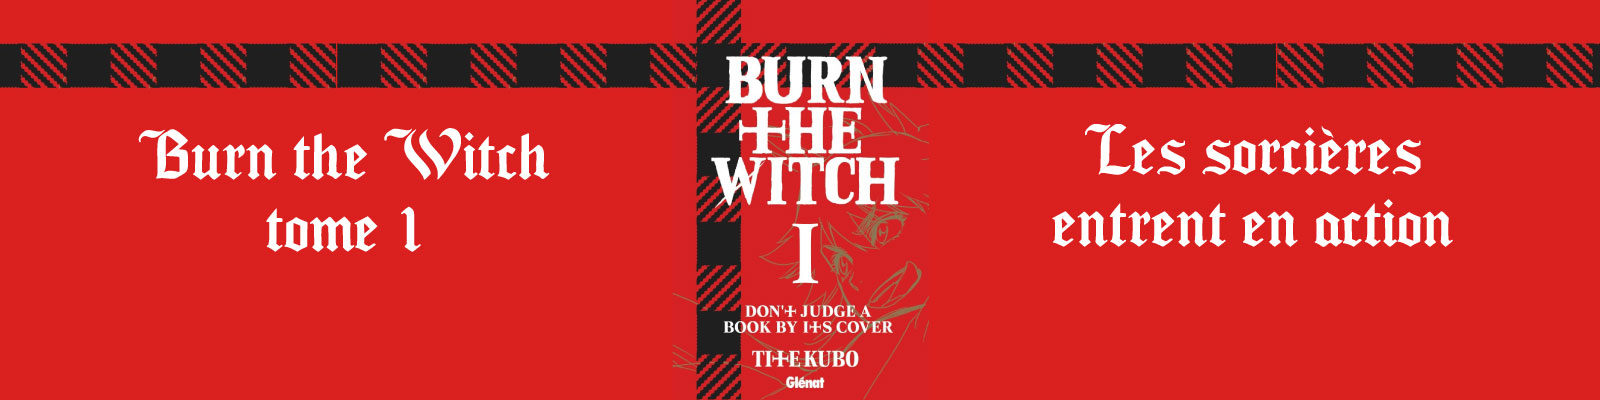 Burn the Witch-Vol.-1